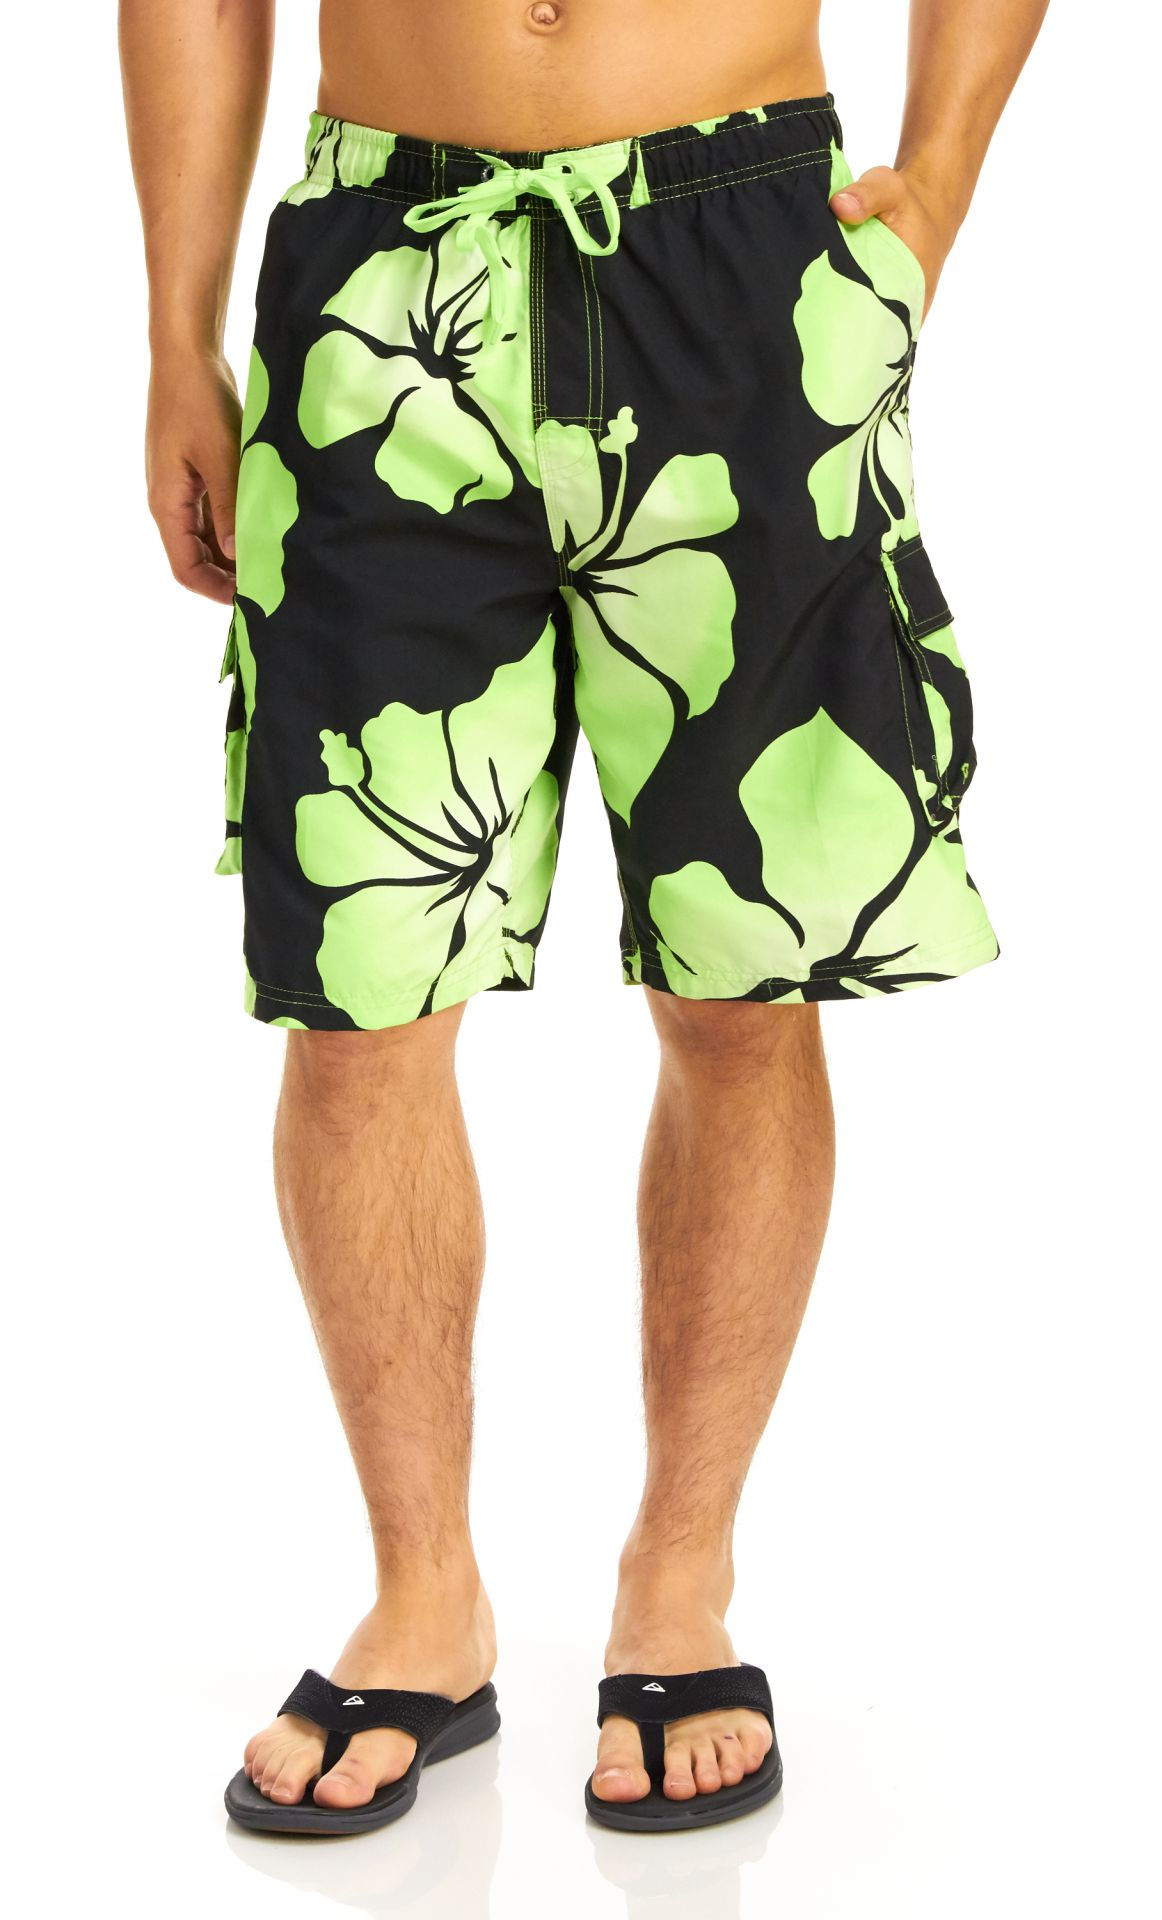 Panama Jack Men's Floral Boardshort - Black/Lime - Small